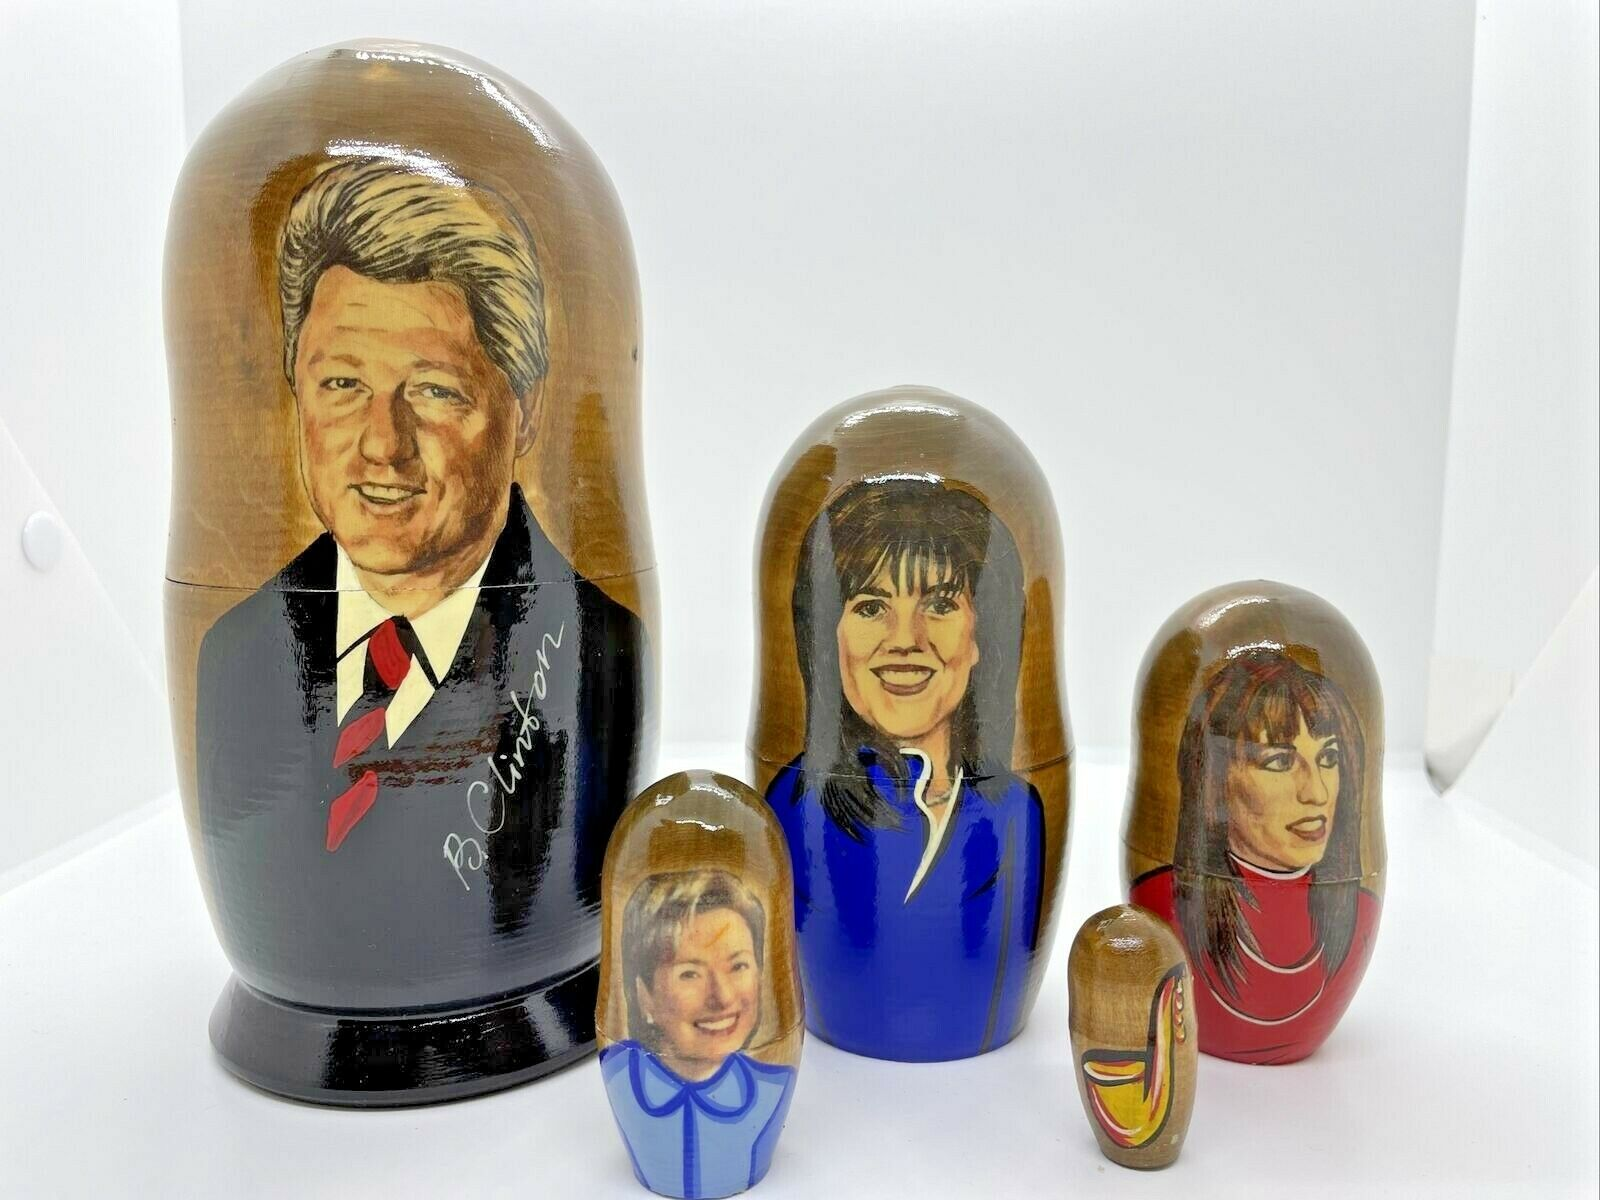 Russian Matryoshka Nesting Doll President Bill Clinton Hillary, Monica, Jones - $56.95